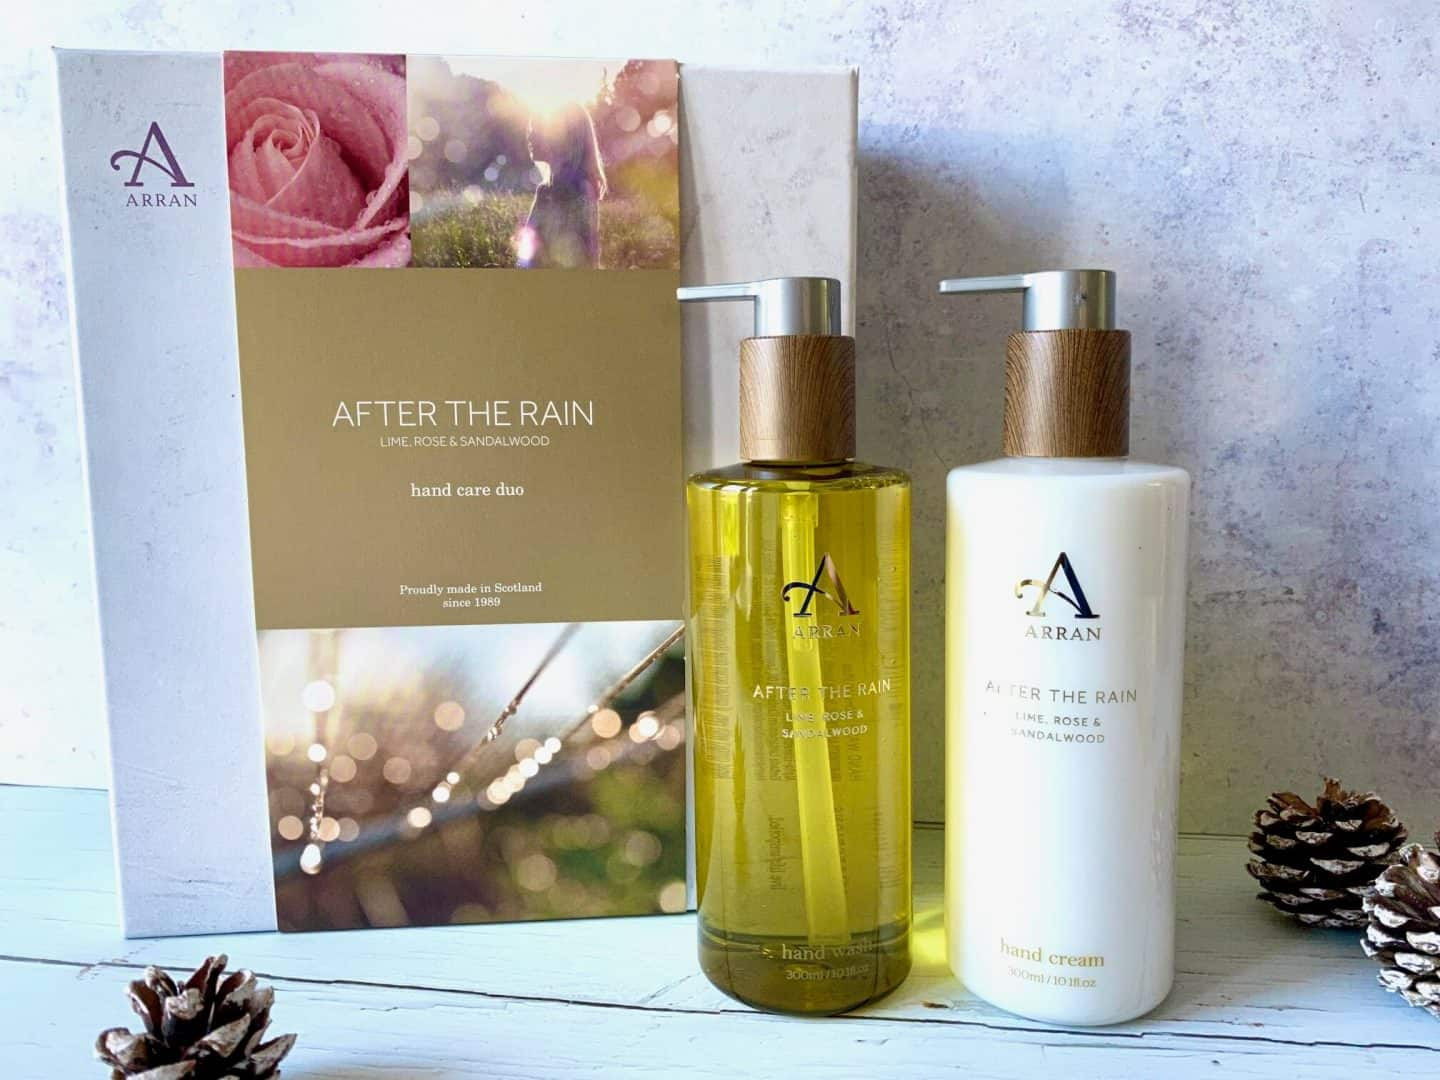 After the Rain Hand Care Duo